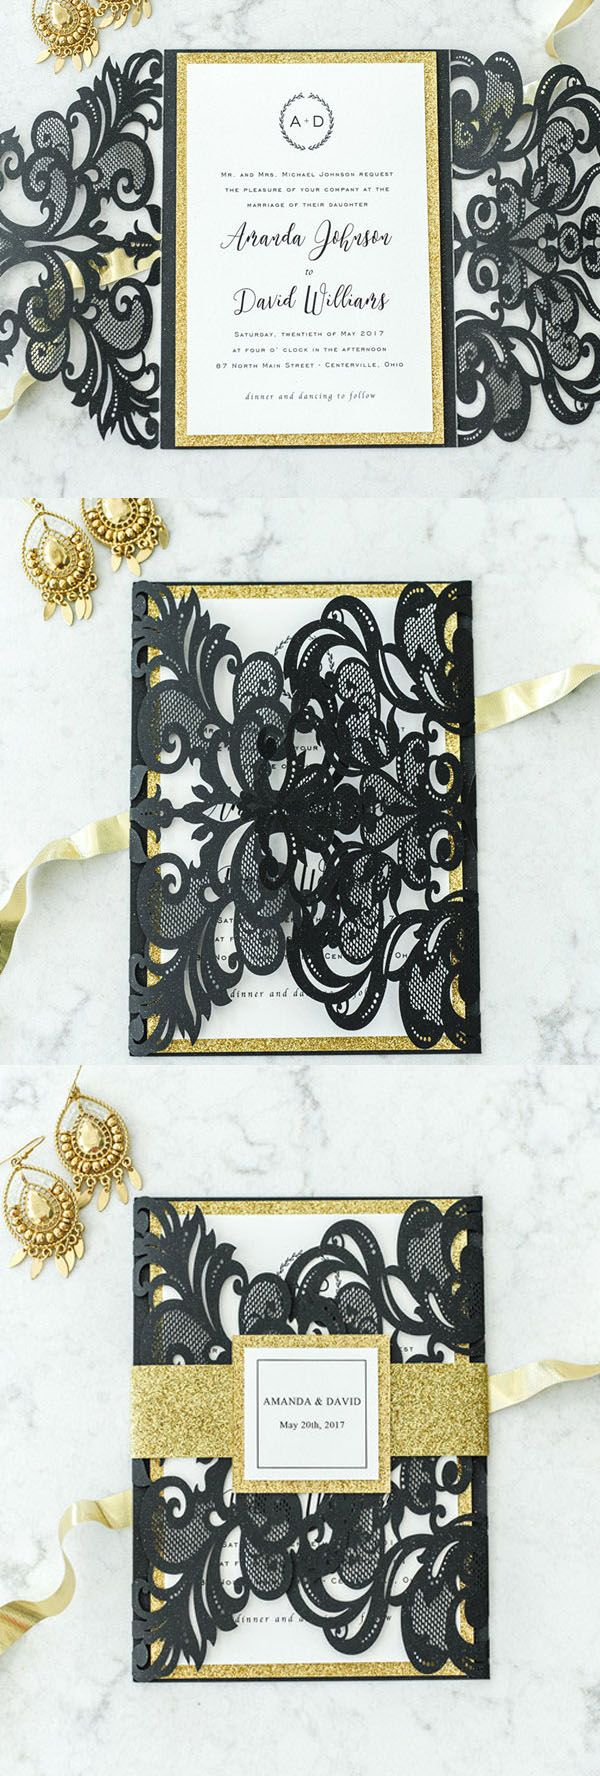 glam gold and black laser cut wedding invitation ideas#weddinginvitations#ElegantWeddingInvites